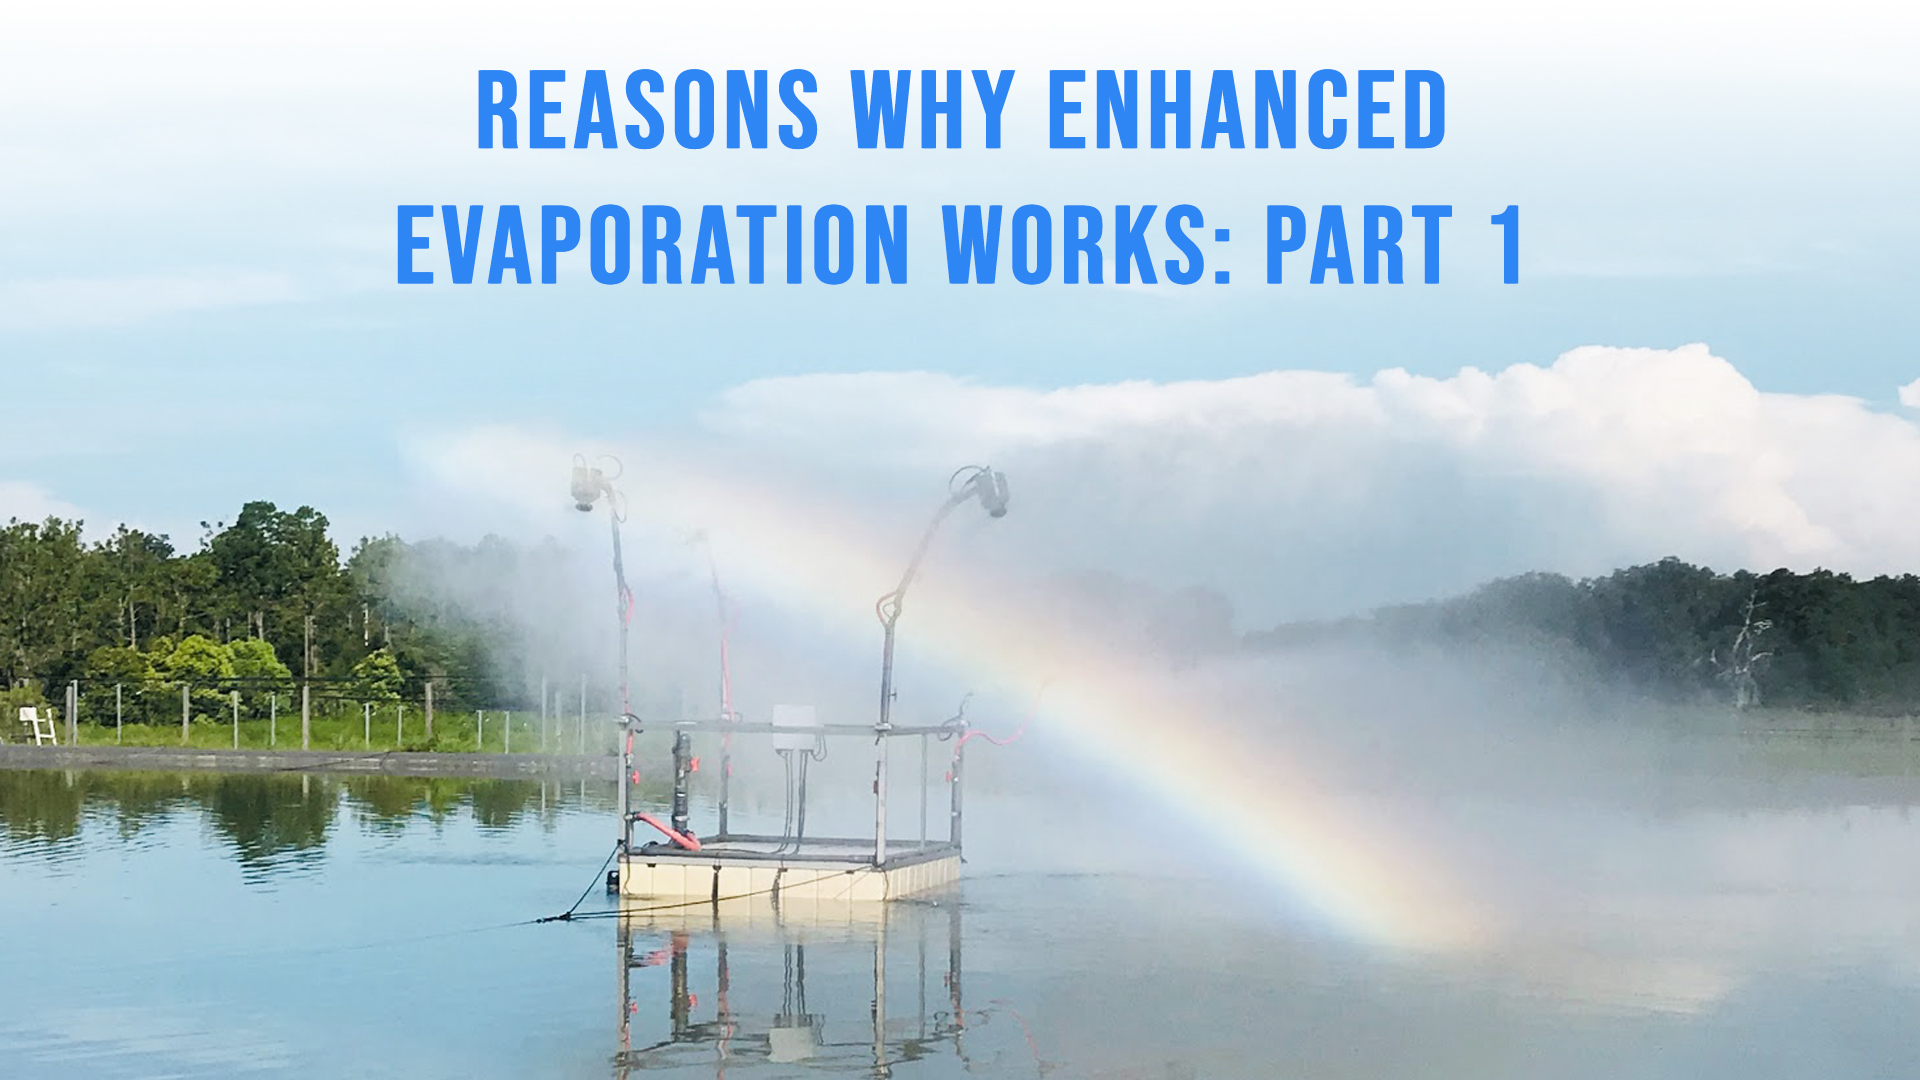 Reasons Why Enhanced Evaporation Works: Part 1